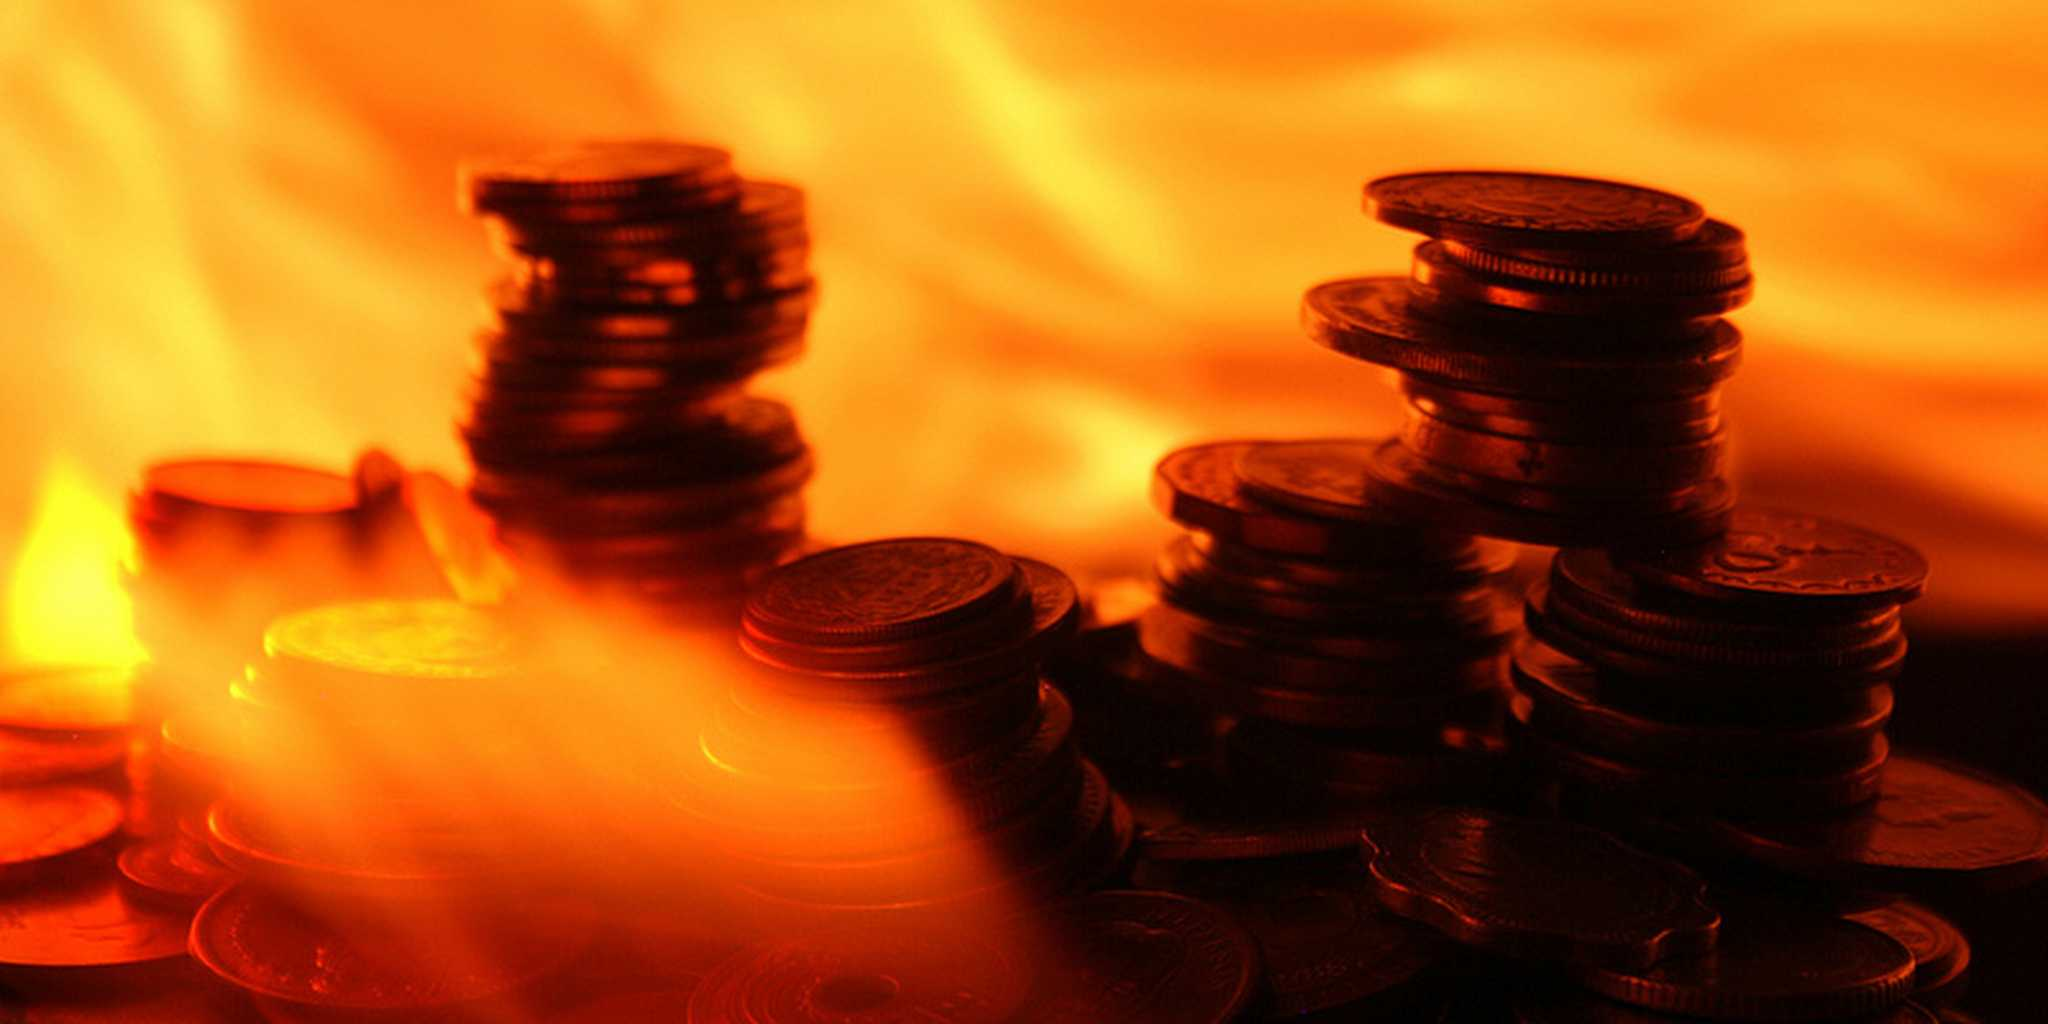 coins and fire1 | Flickr - Photo Sharing!